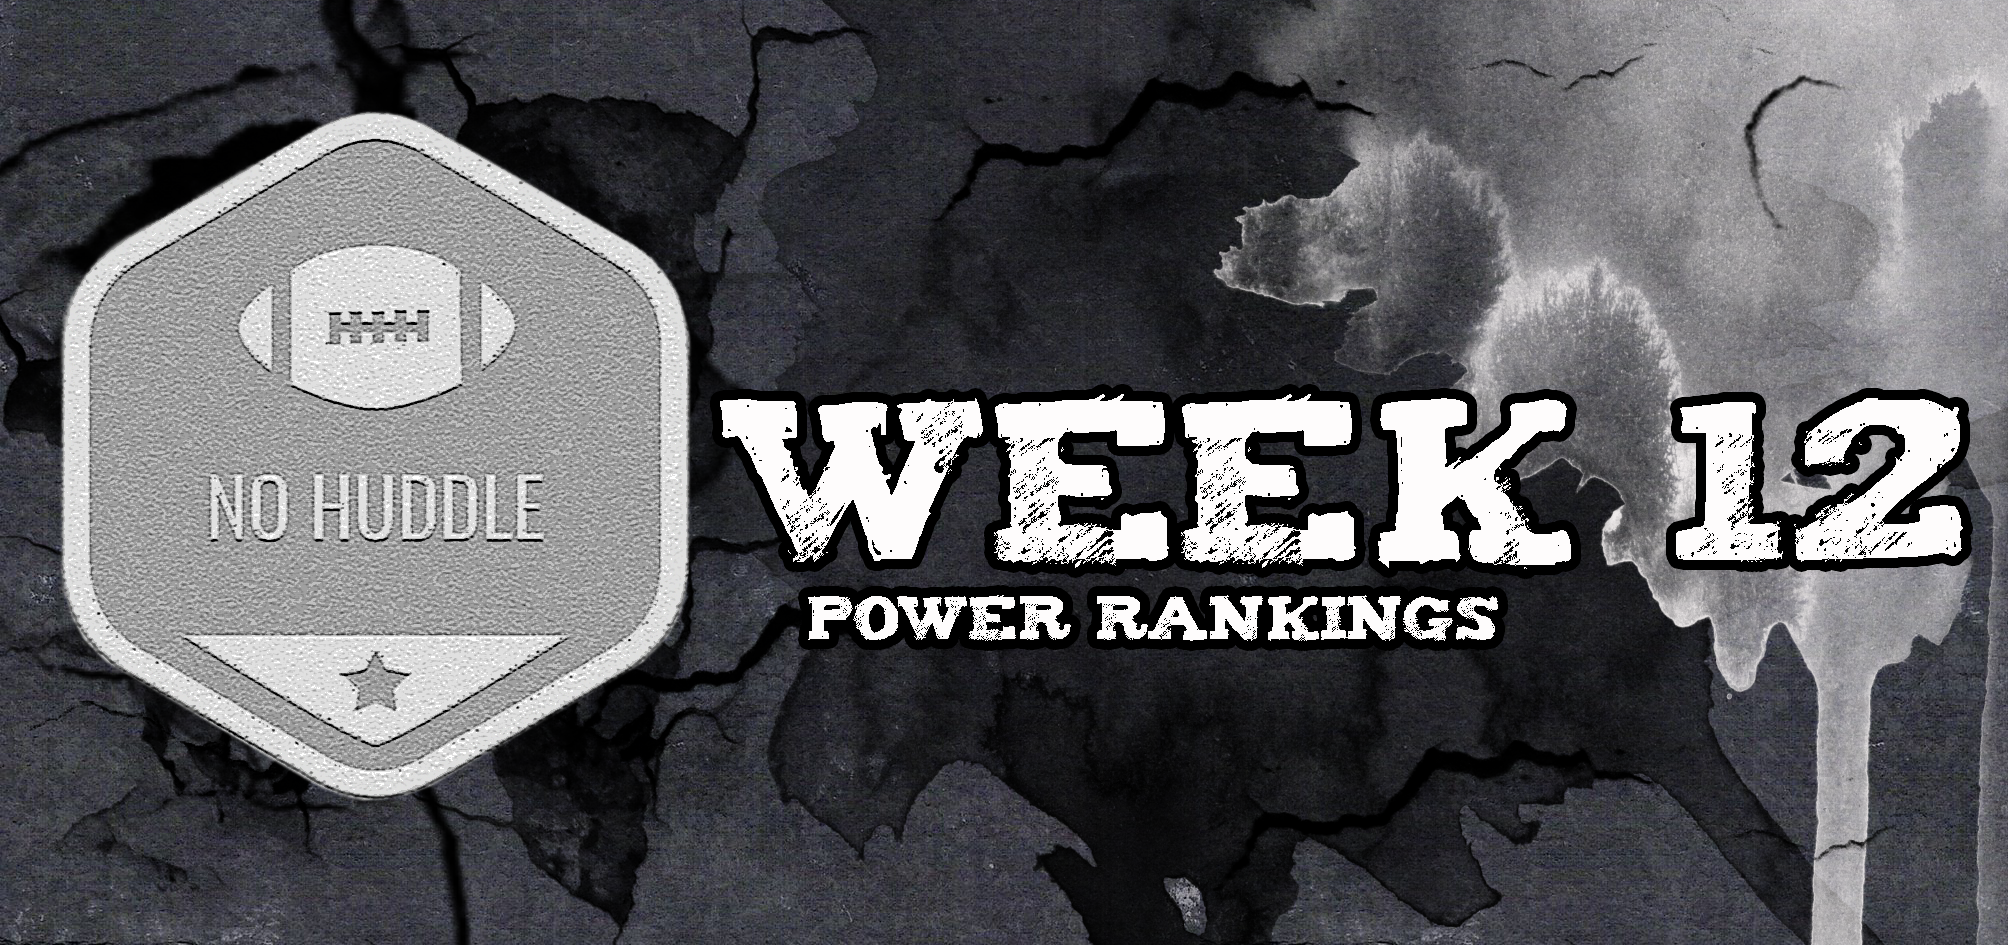 Power Rankings: Semana 12